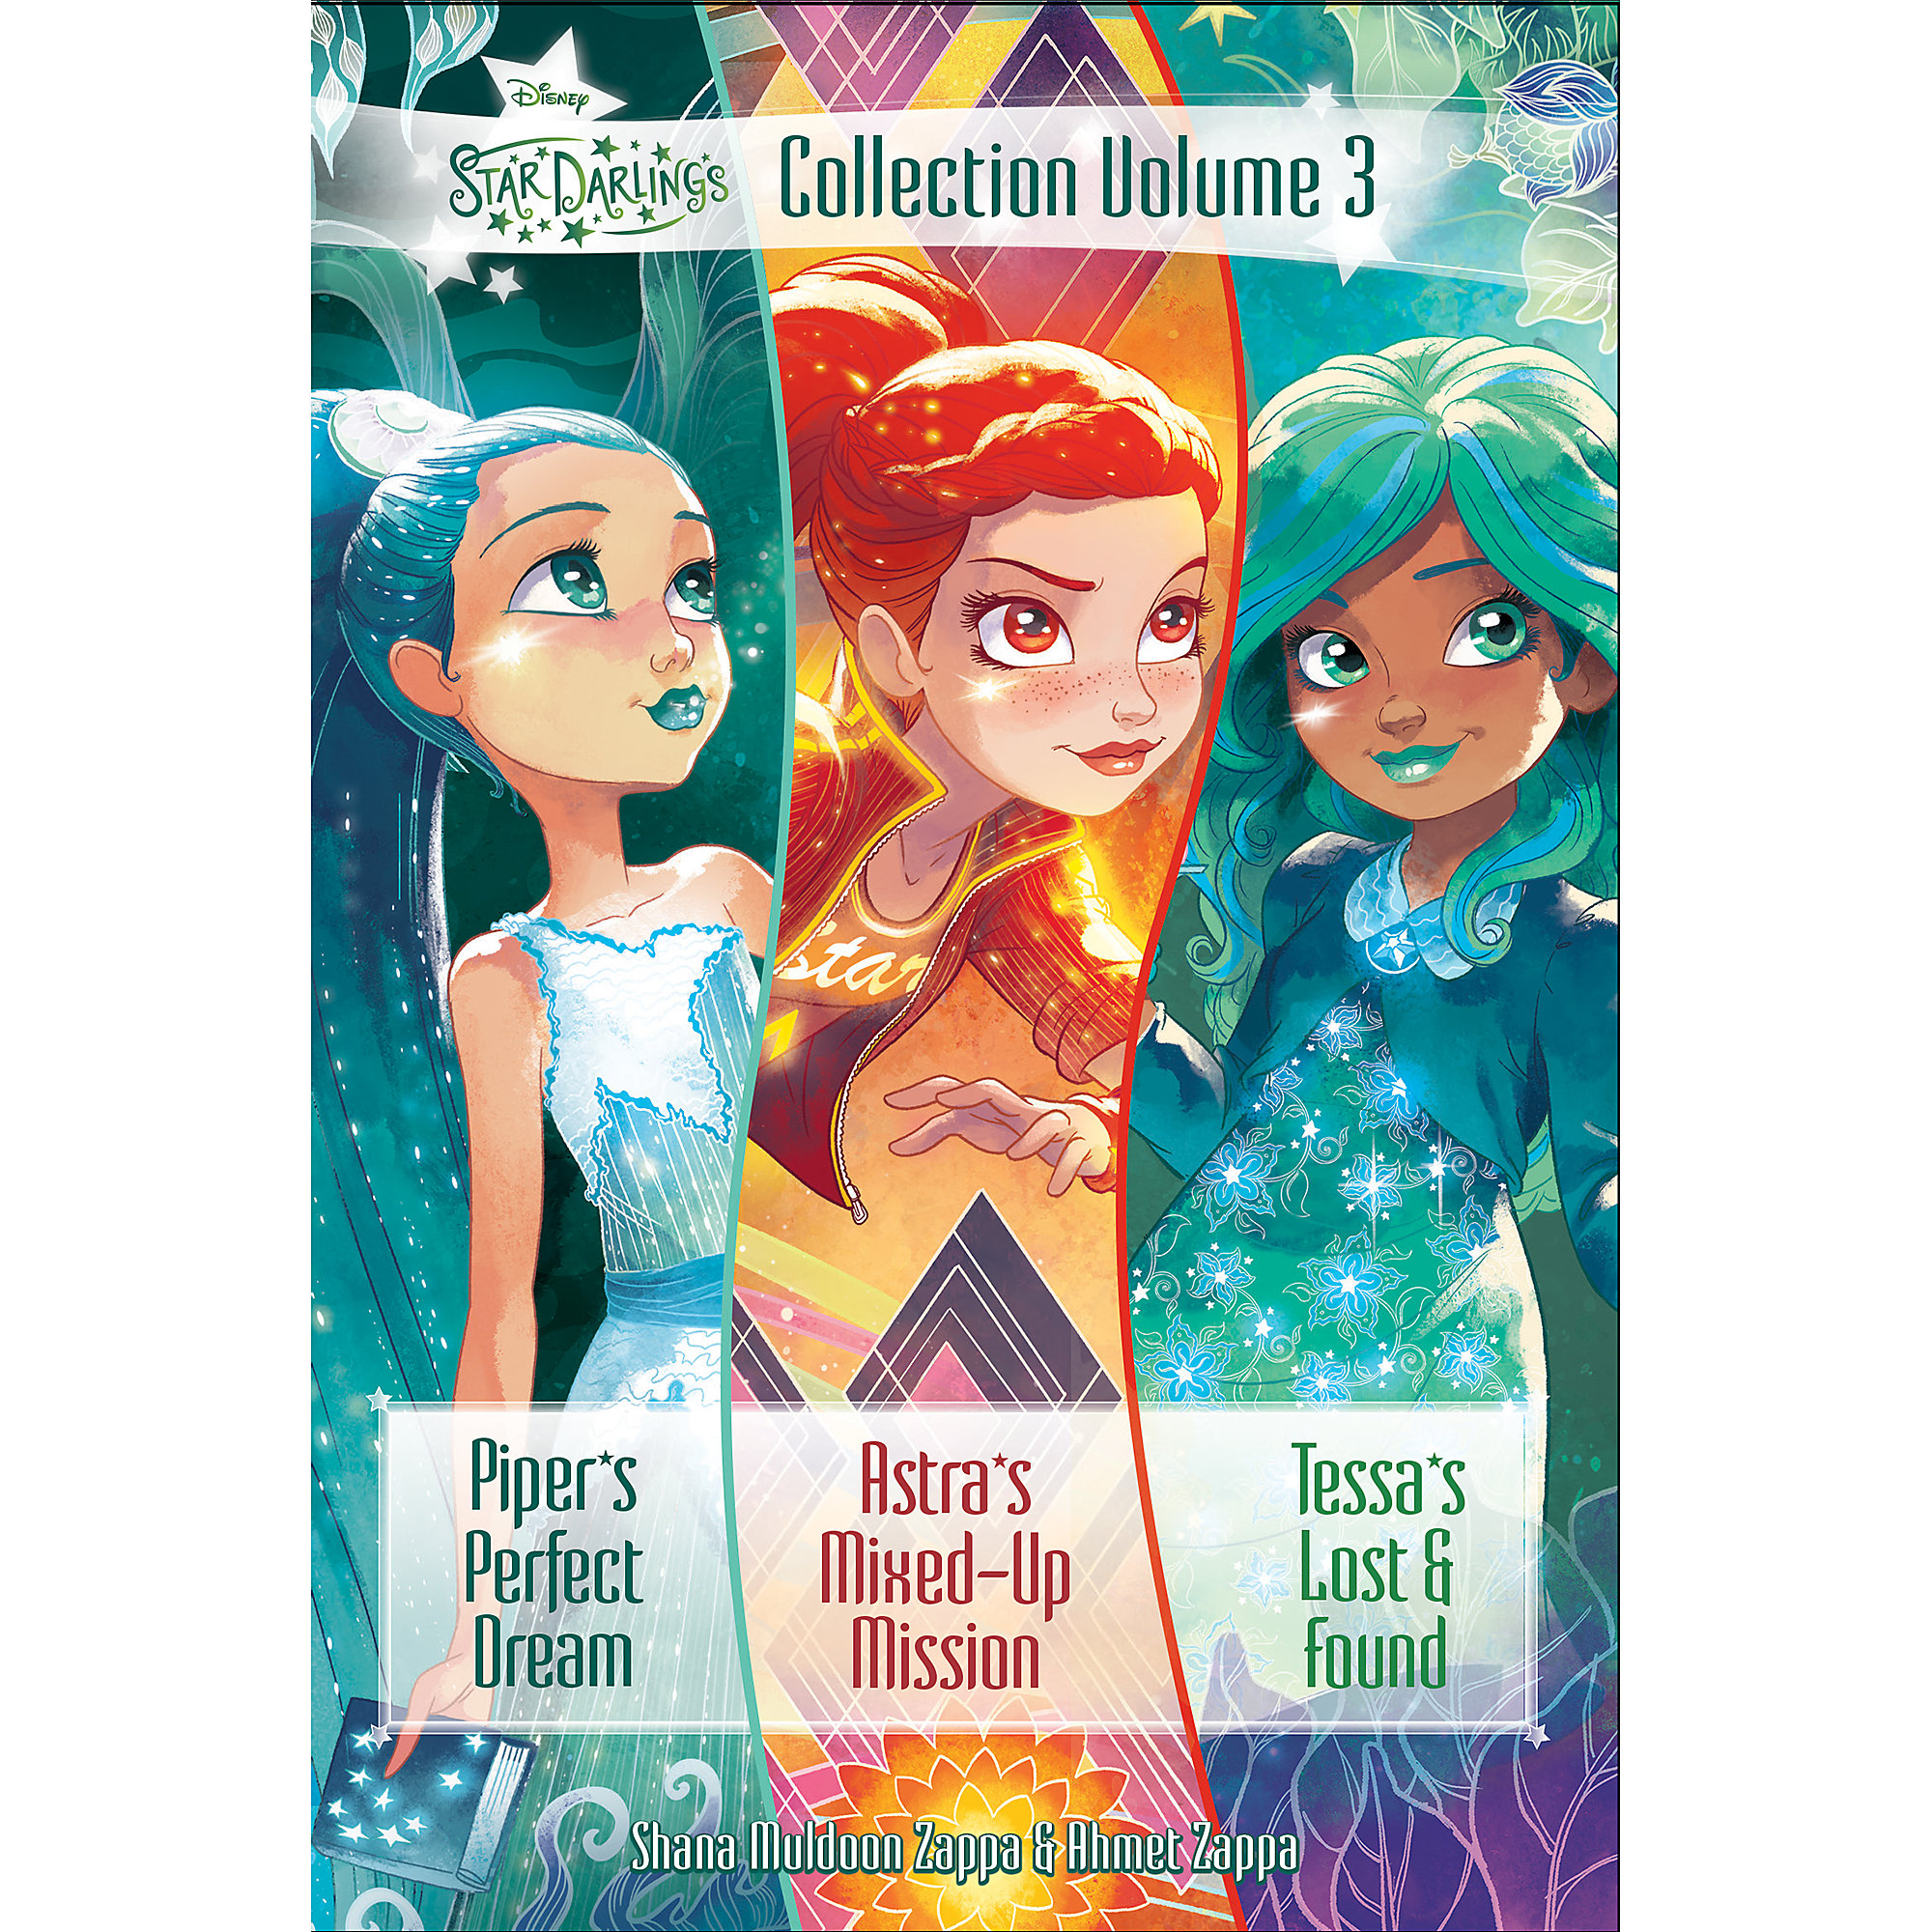 Star Darlings Collection Volume 3 Book